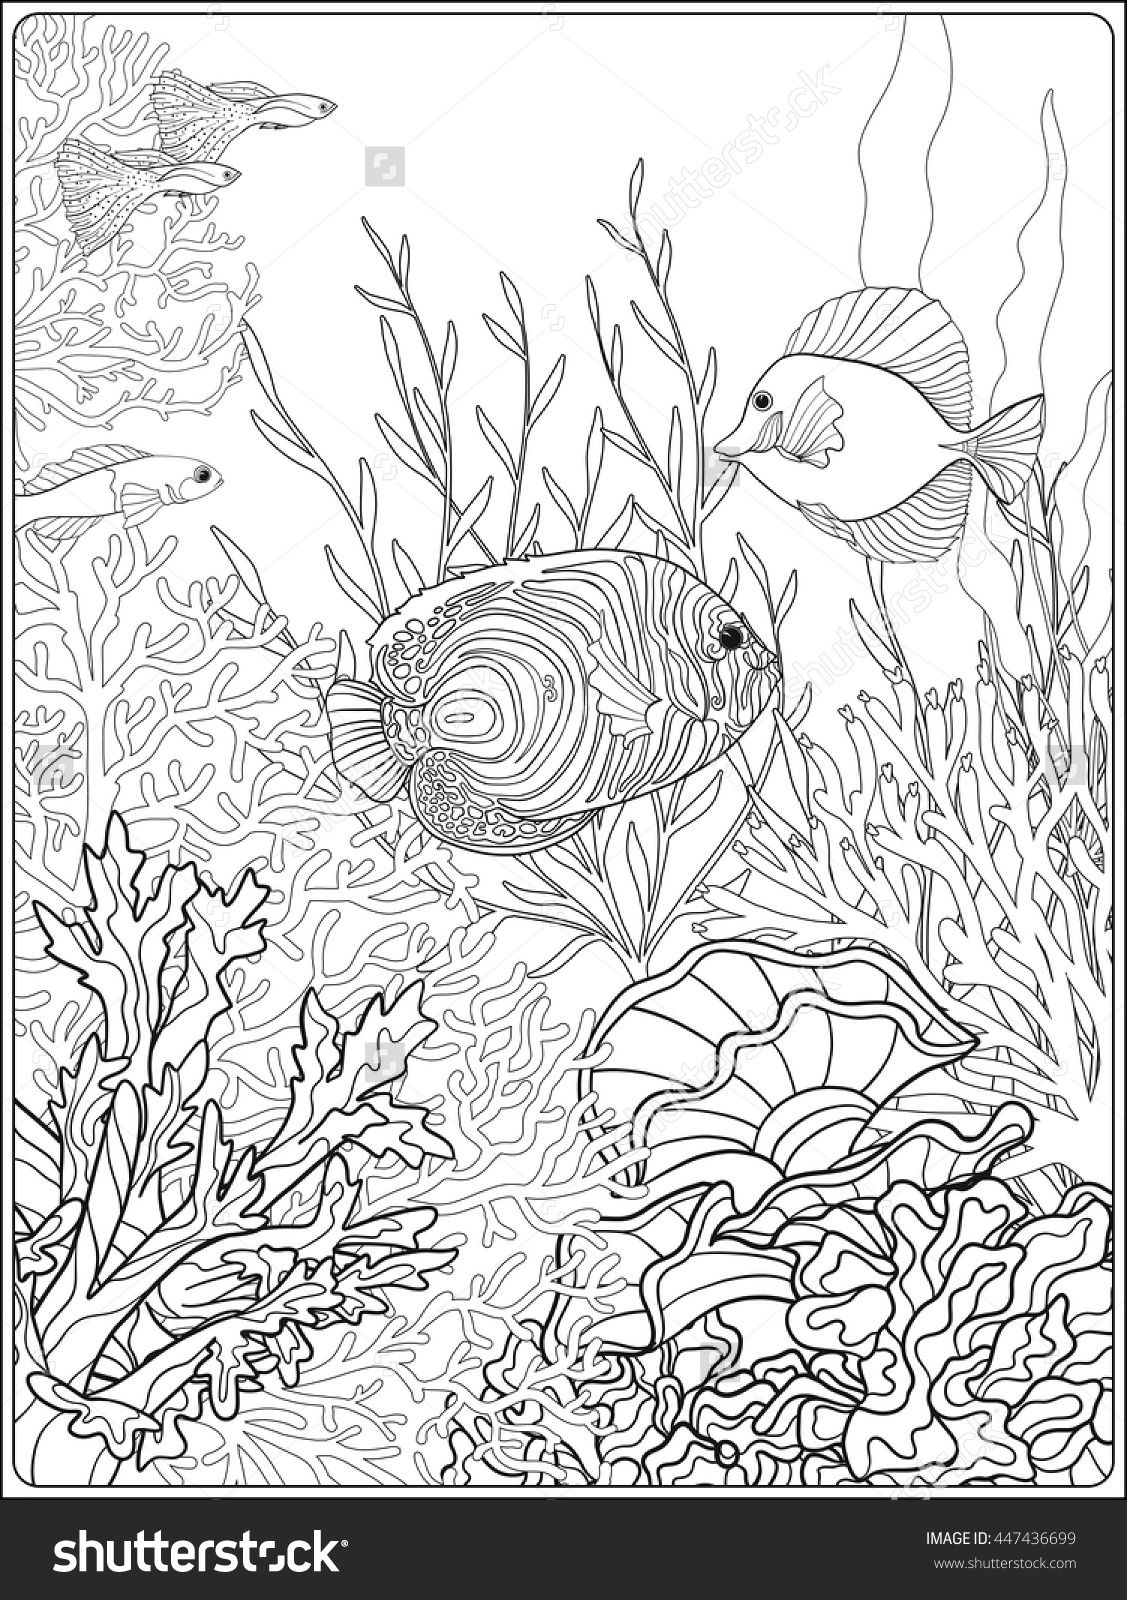 Adult coloring book Coloring page